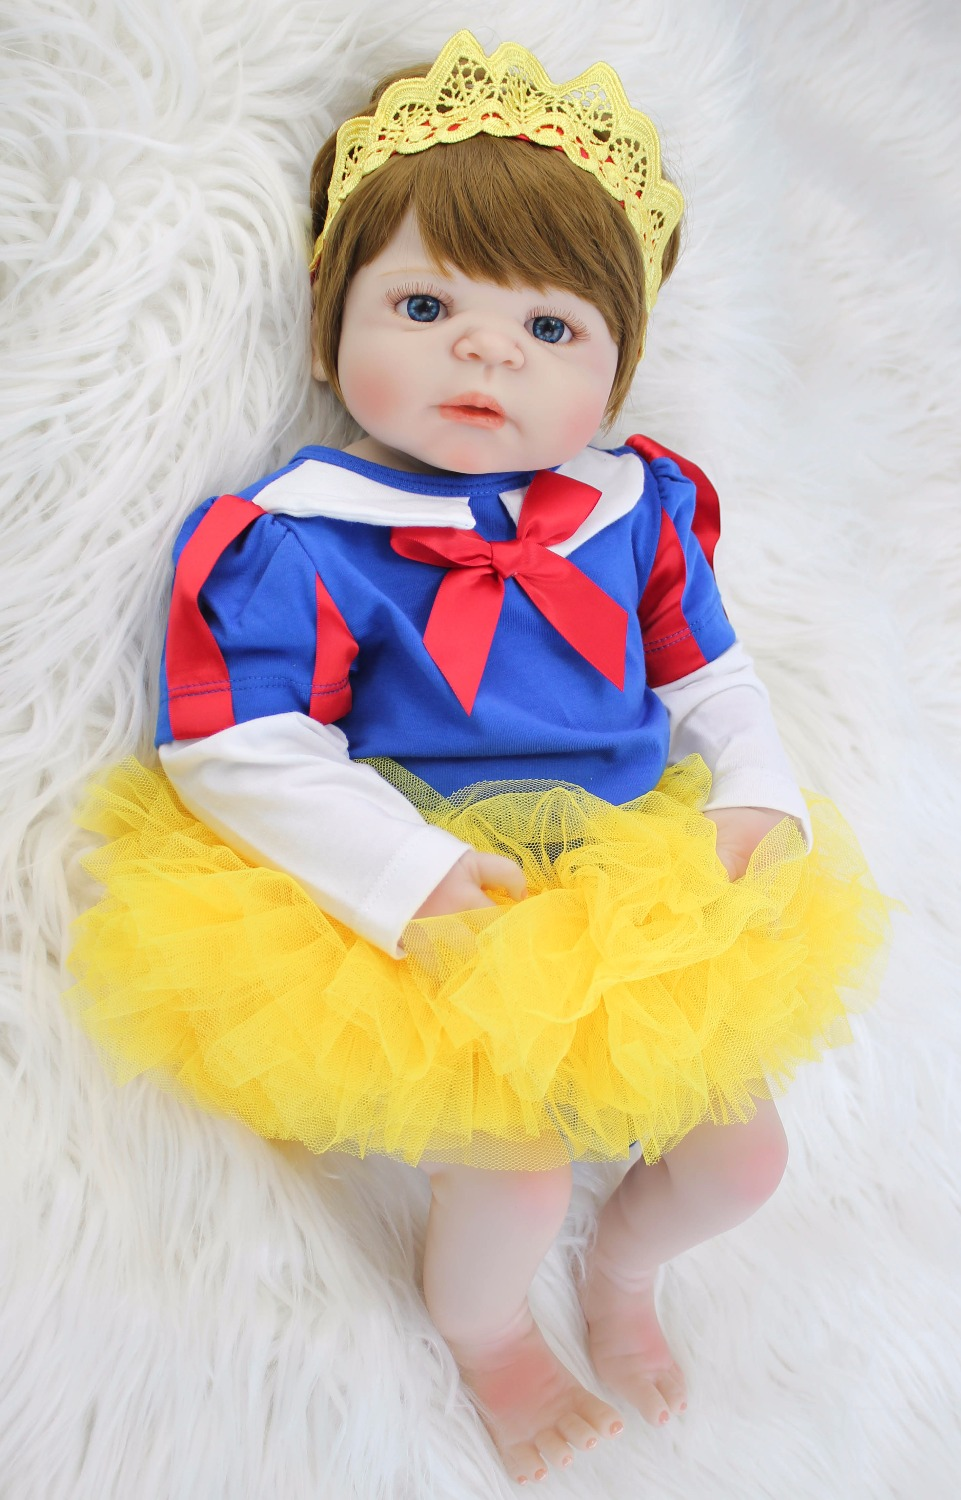 55cm Full Silicone Reborn Baby Doll Toy Realistic Vinyl Newborn Sweet Princess Babies Bebe Fashion Birthday Gift Girls Boneca55cm Full Silicone Reborn Baby Doll Toy Realistic Vinyl Newborn Sweet Princess Babies Bebe Fashion Birthday Gift Girls Boneca